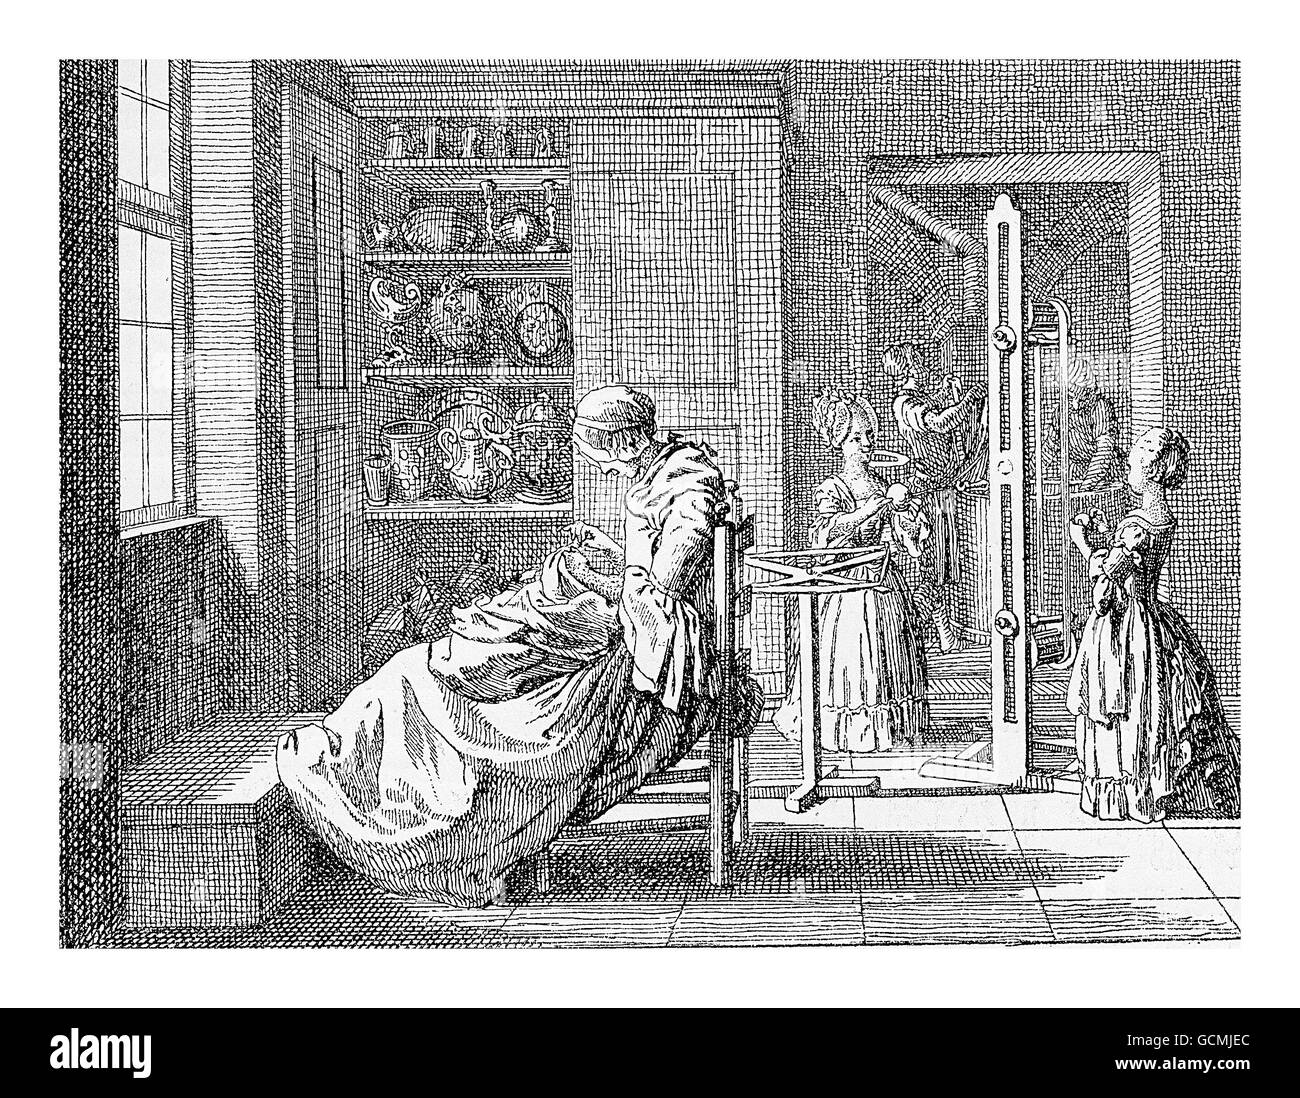 XVIII century, family life in Prussian upper class family: girls dressed as little woman help with domestic chores - Stock Image